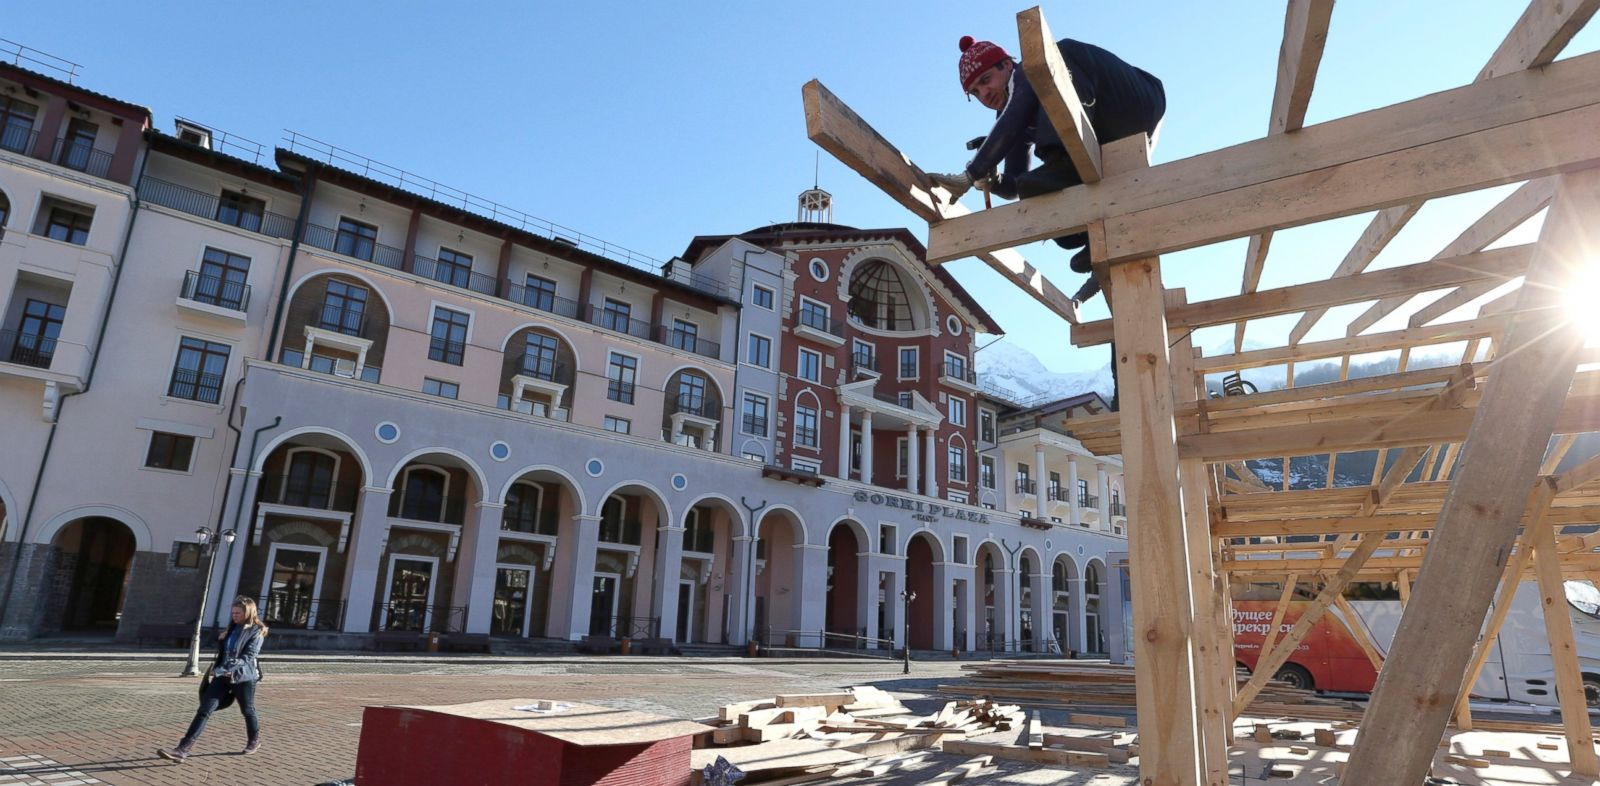 PHOTO: Construction work continues apace outside the Gorki Plaza East hotel in Krasnaya Polyana, Russia, Feb. 2, 2014.